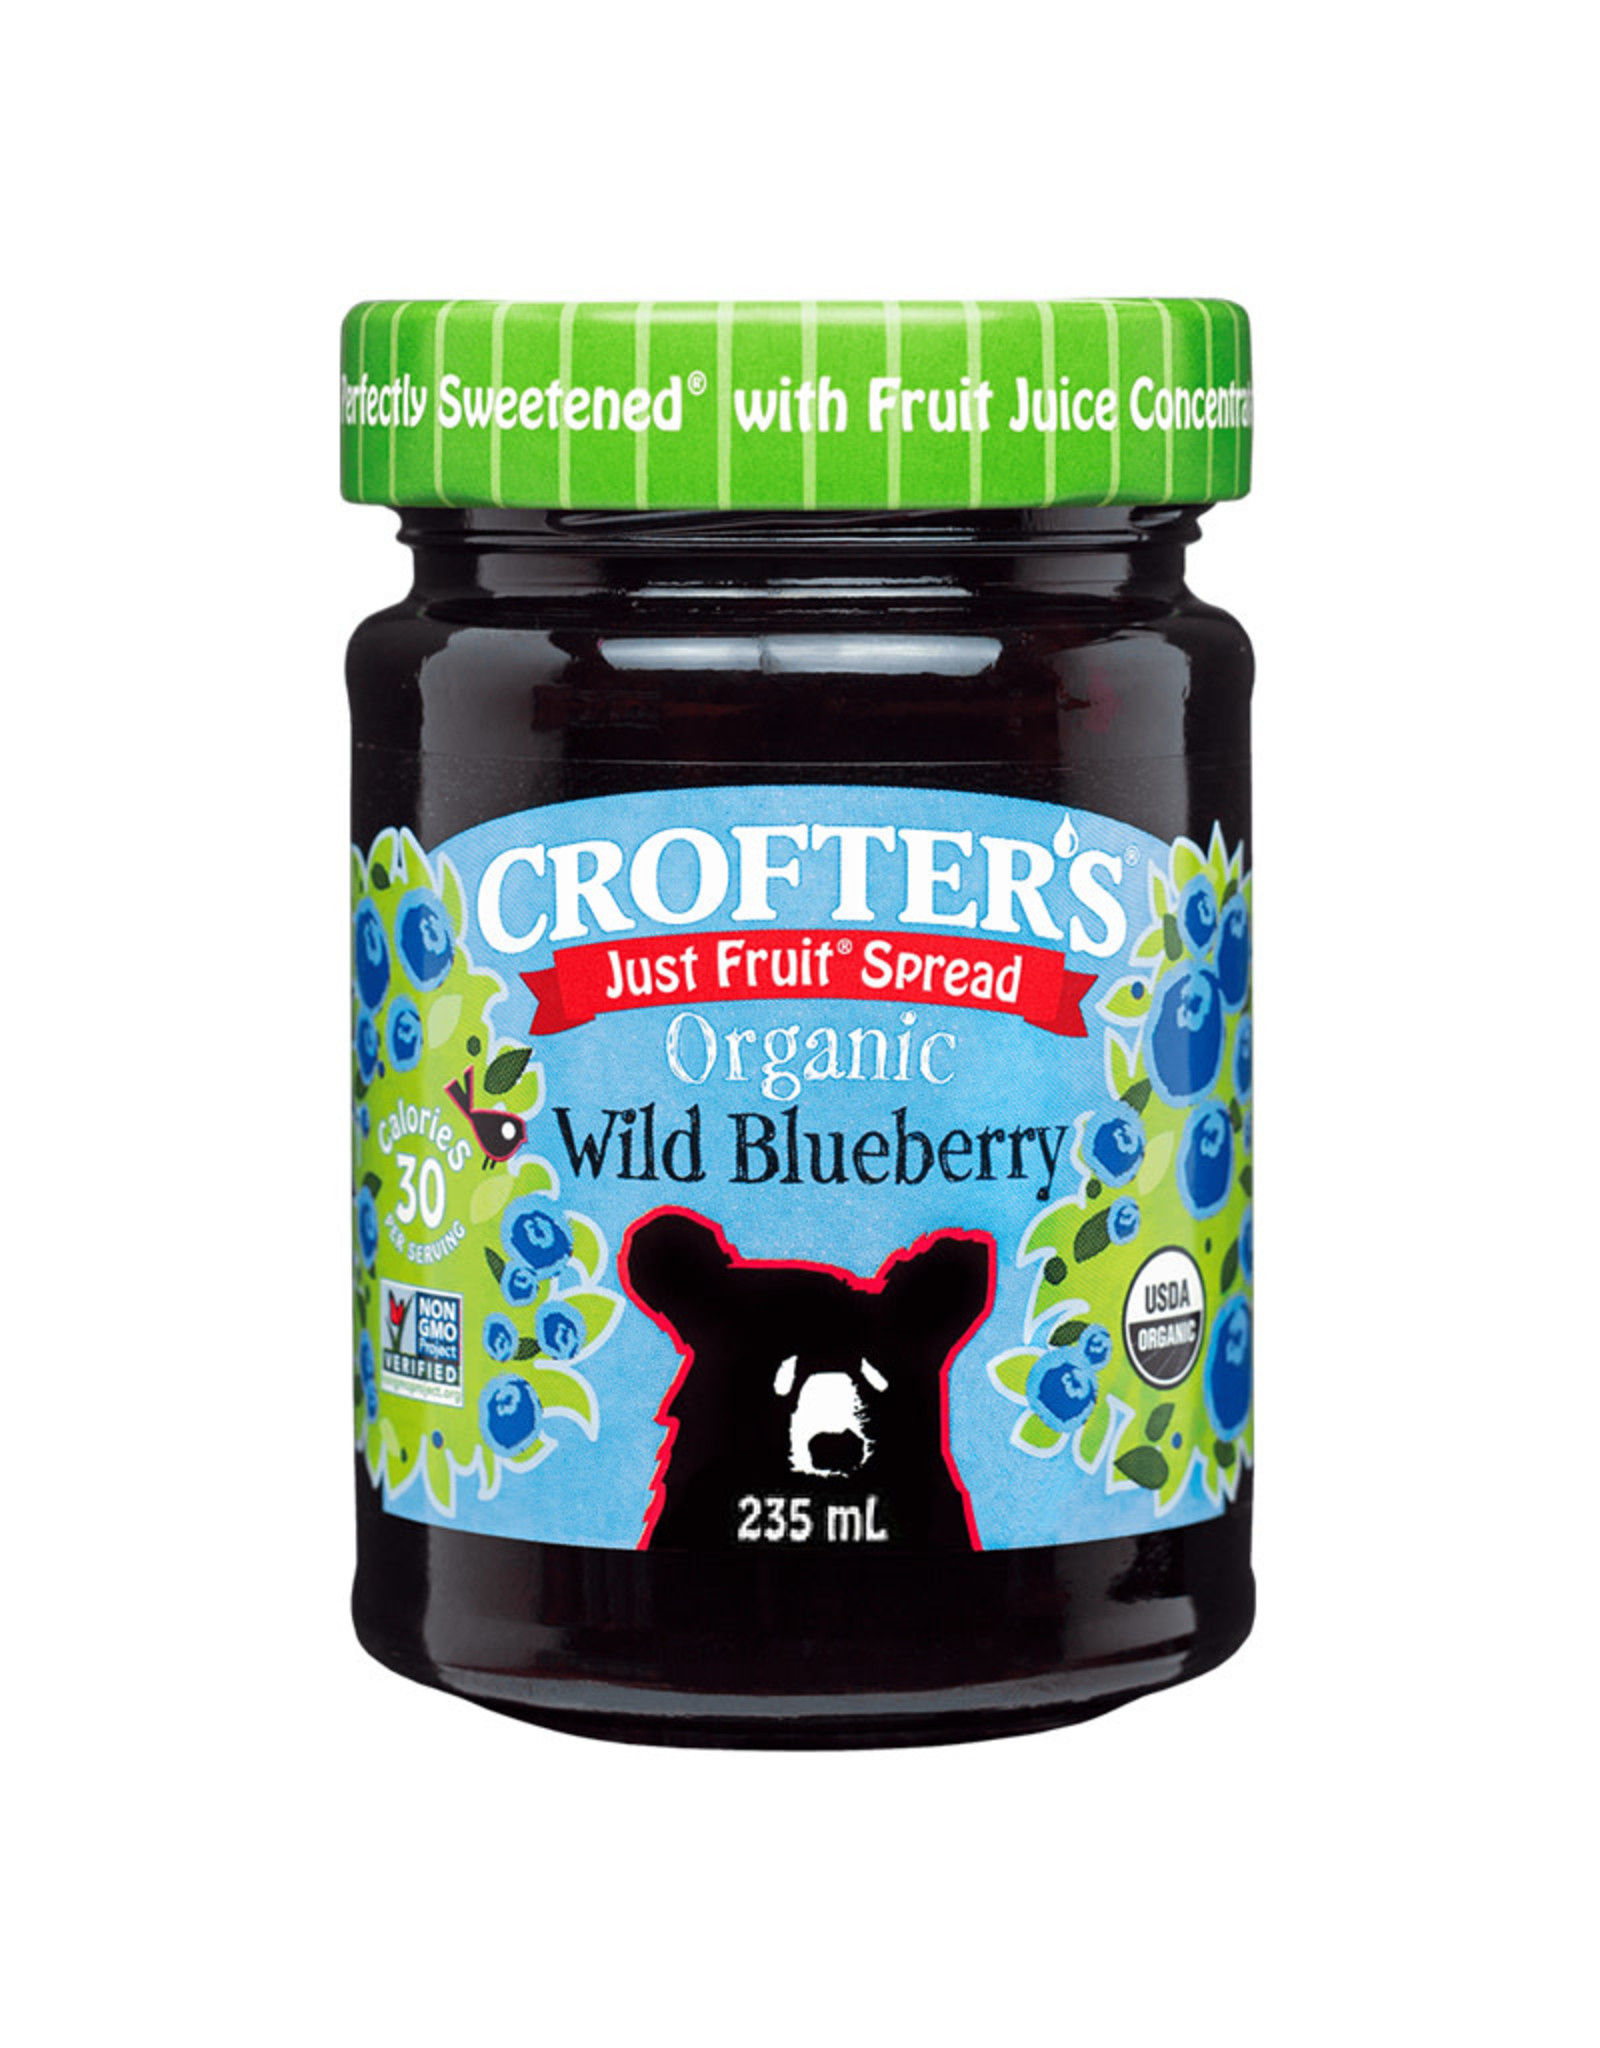 Crofters Organic Crofters Organic - Just Fruit Spread, Wild Blueberry (235ml)